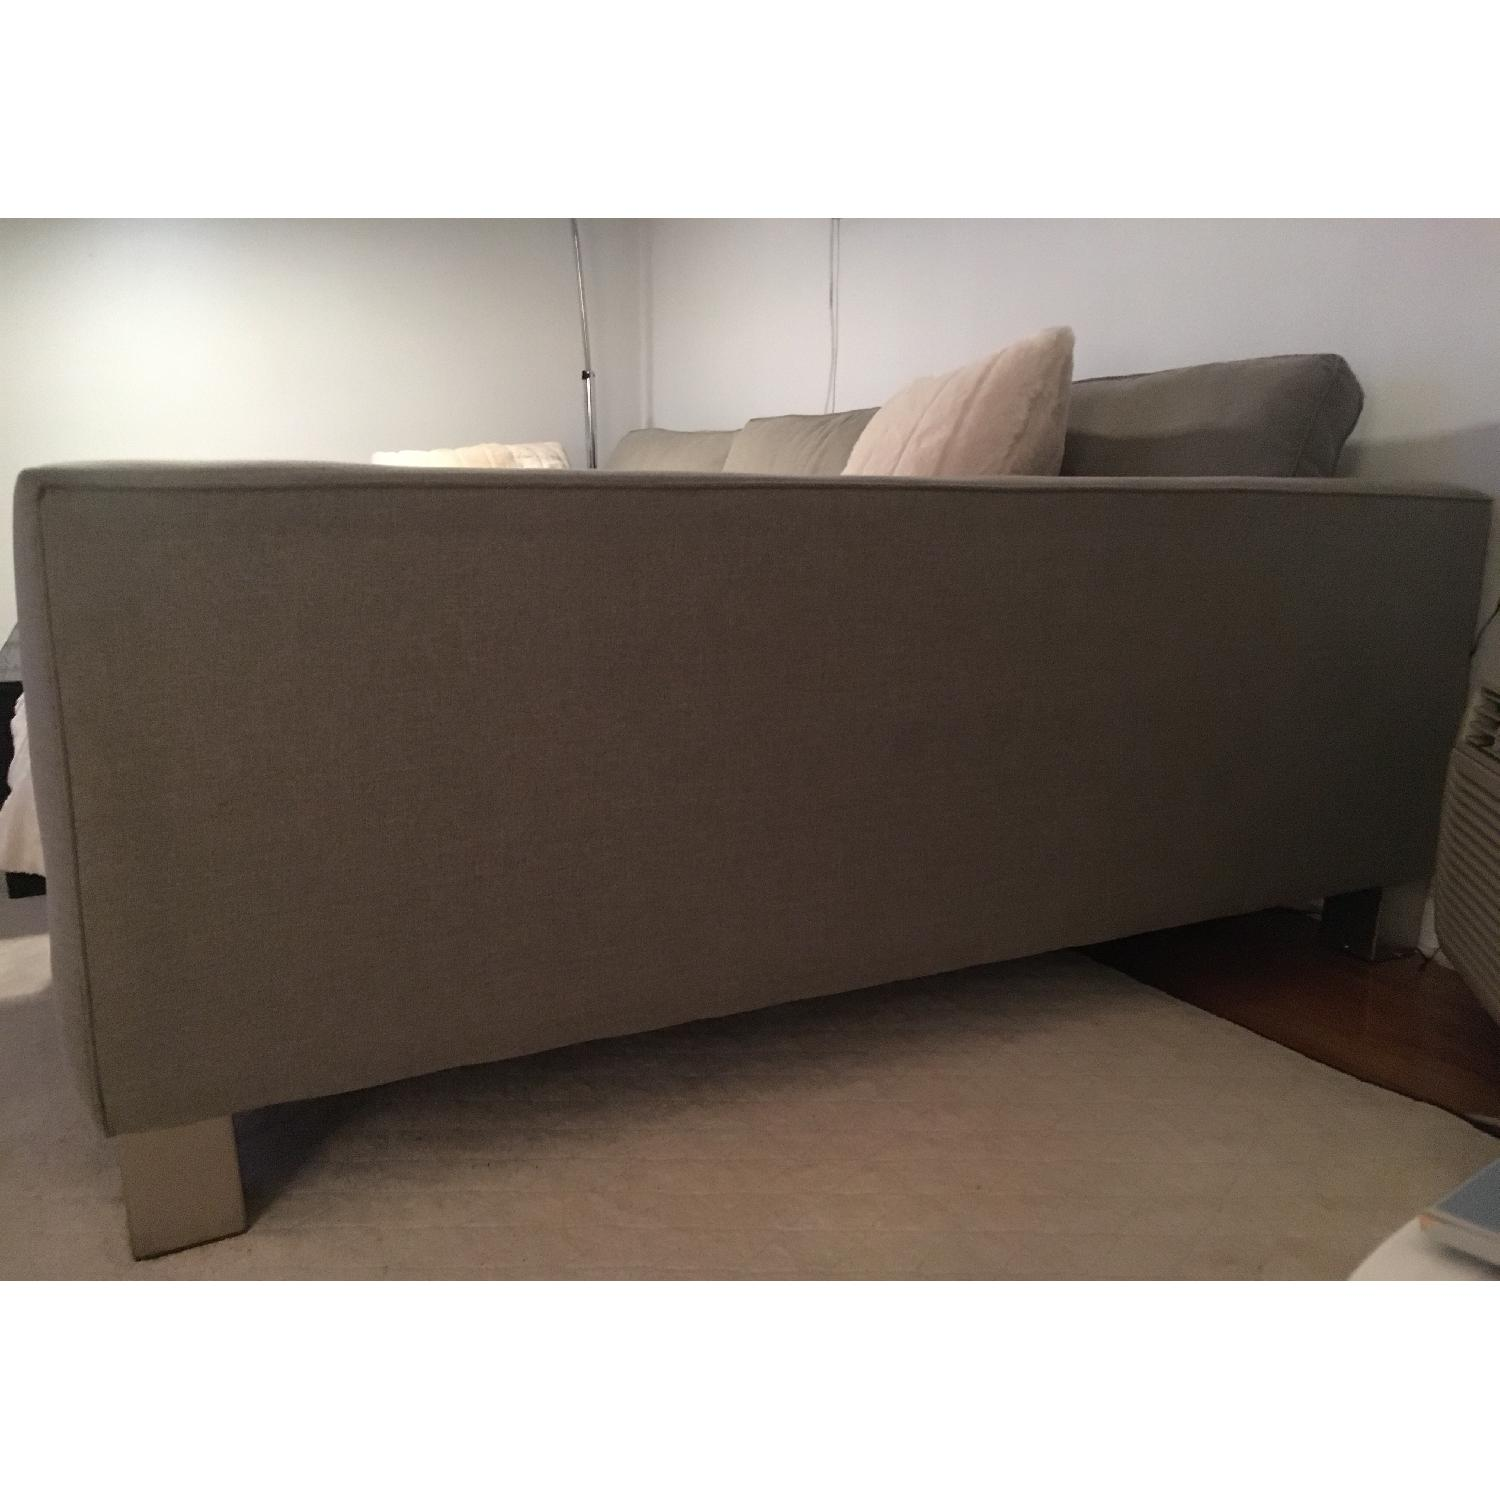 Bloomingdale's 2 Piece L-Shape Sectional w/ Chaise Lounge in Pewter/Gray - image-3